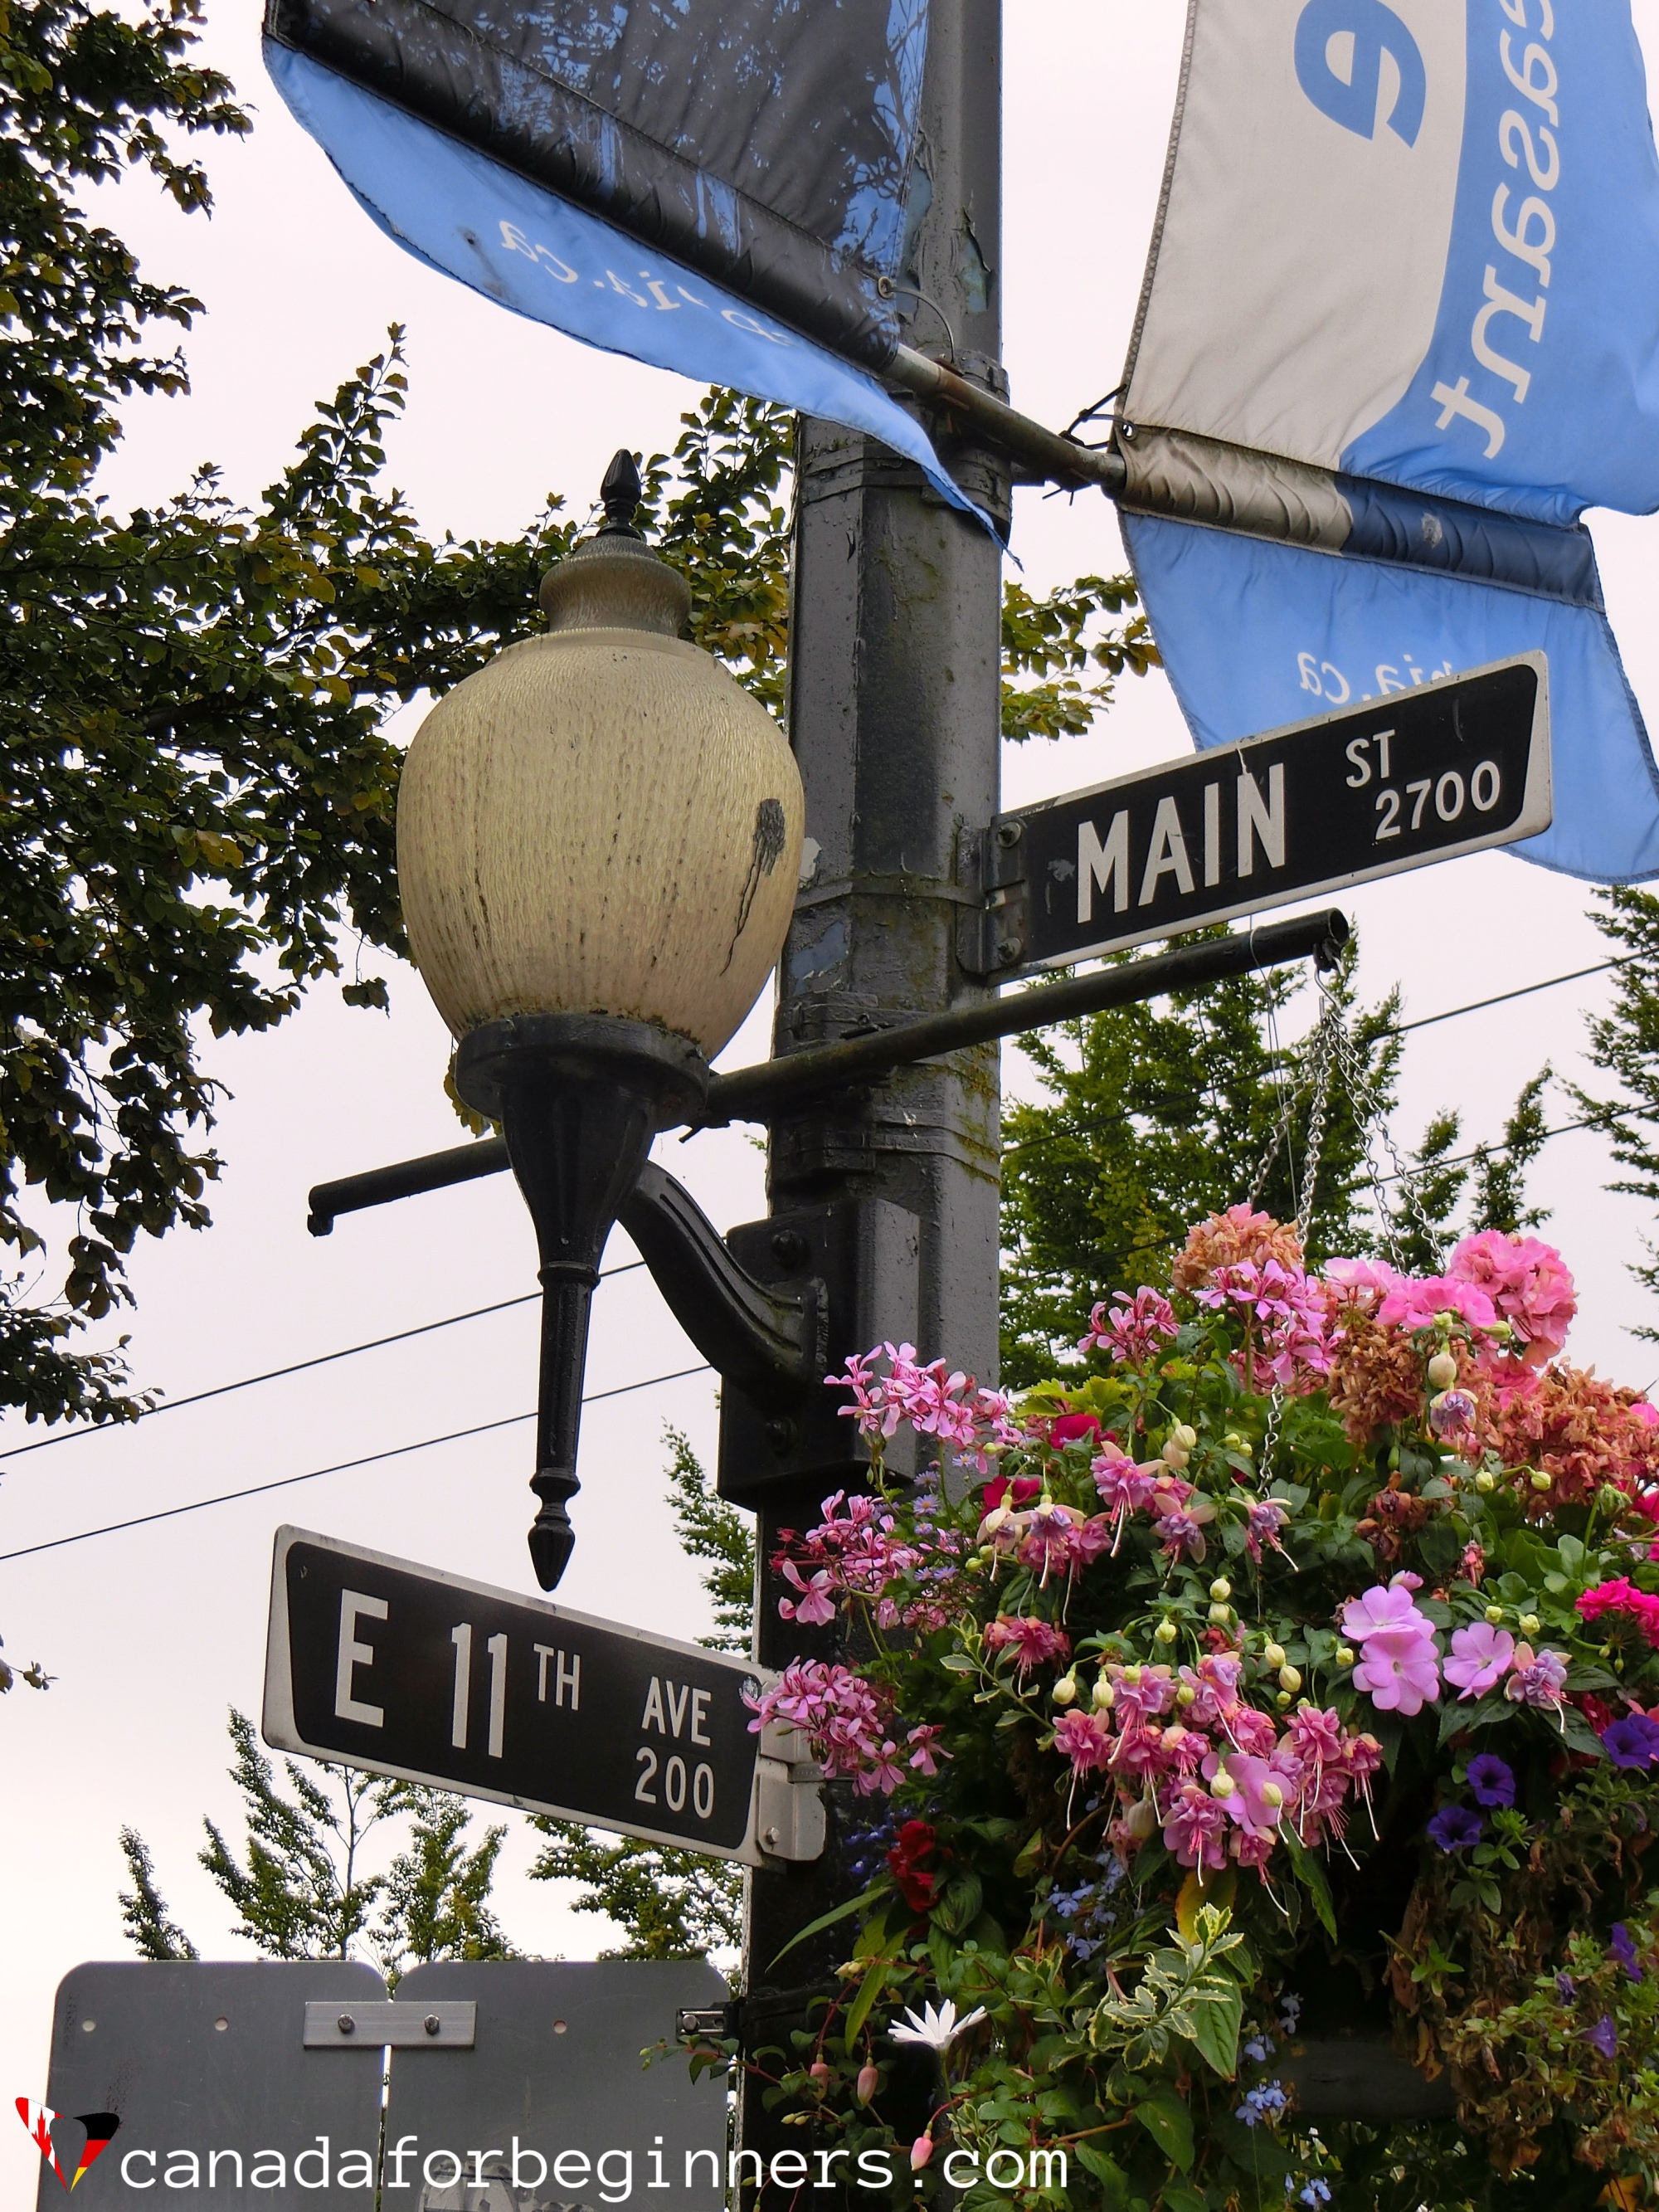 Street sign in Vancouver